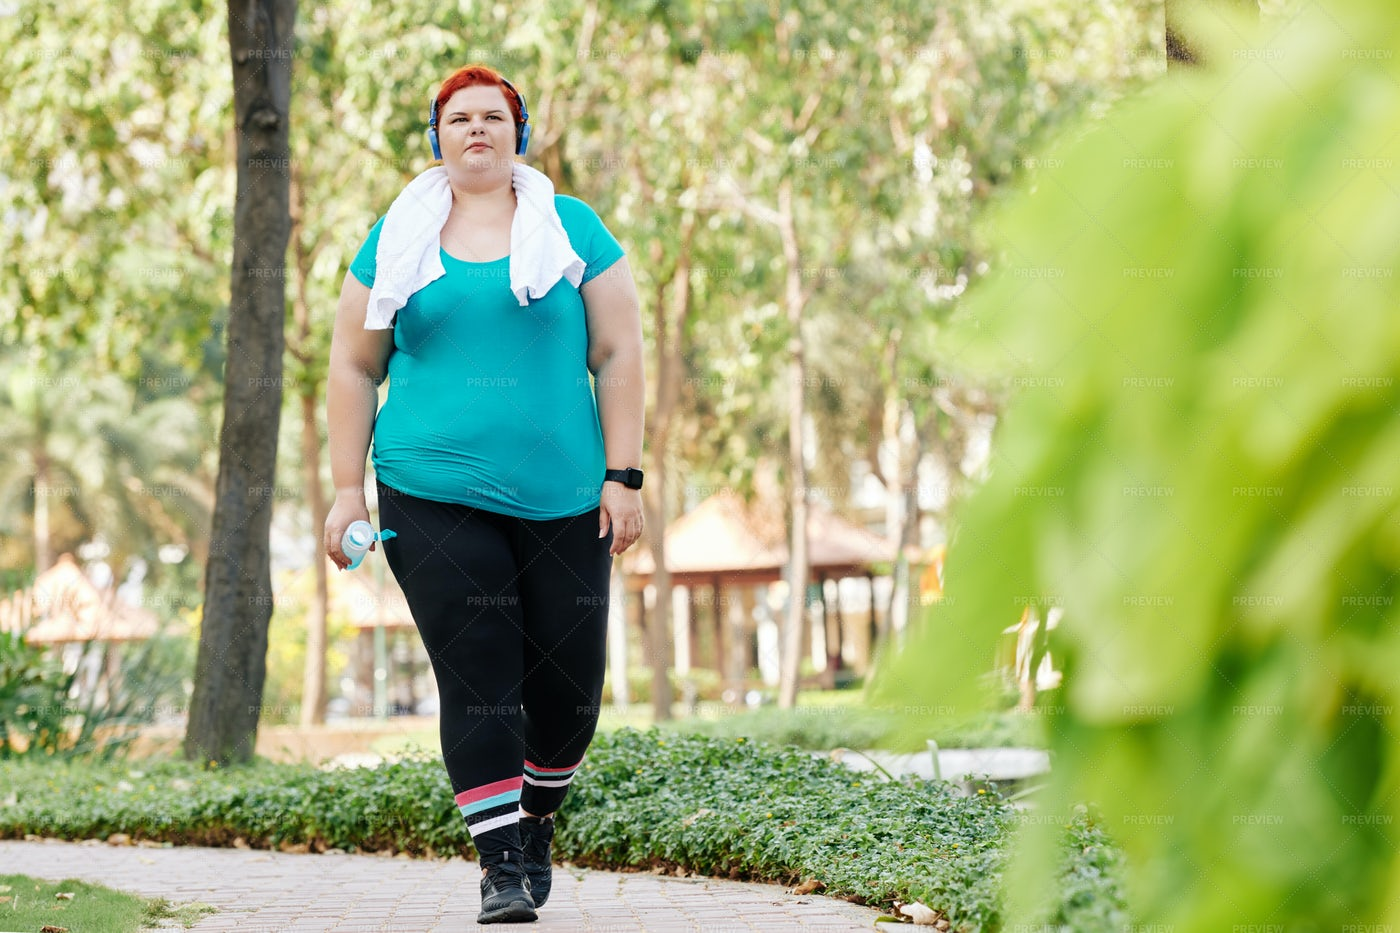 Overweight Woman Walking In Park: Stock Photos